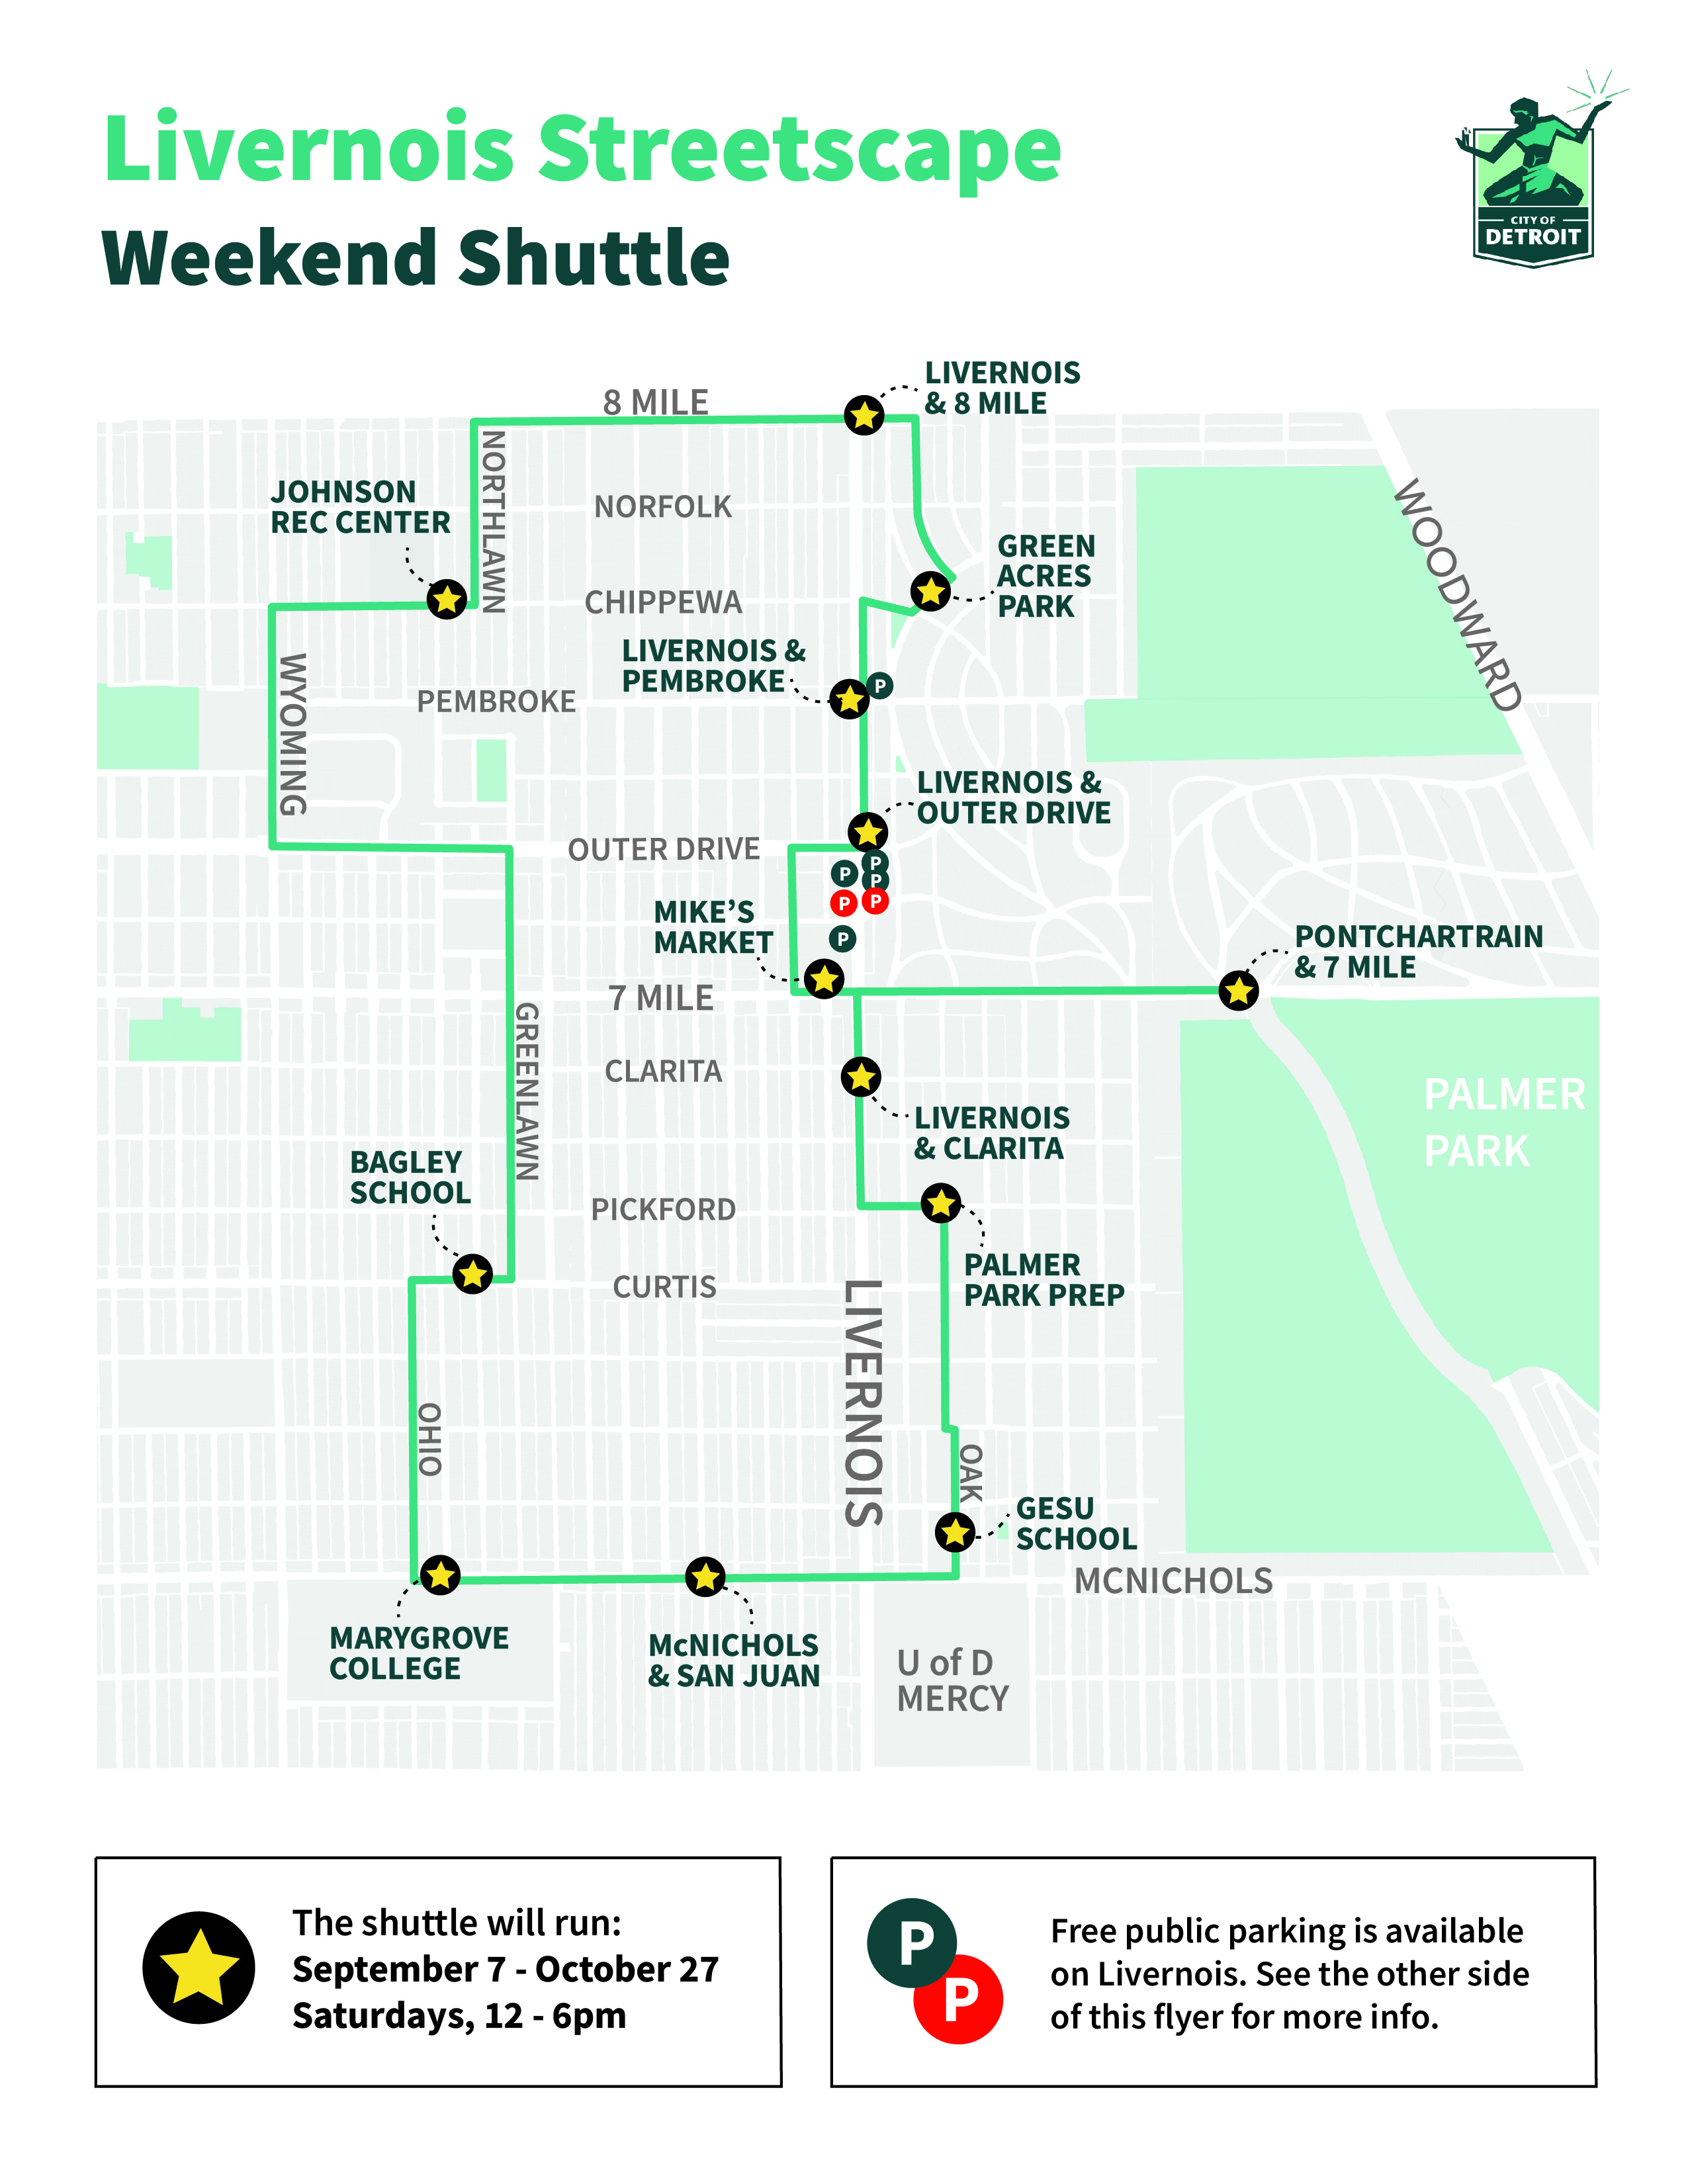 Liverrnois streetscape weekend shuttle